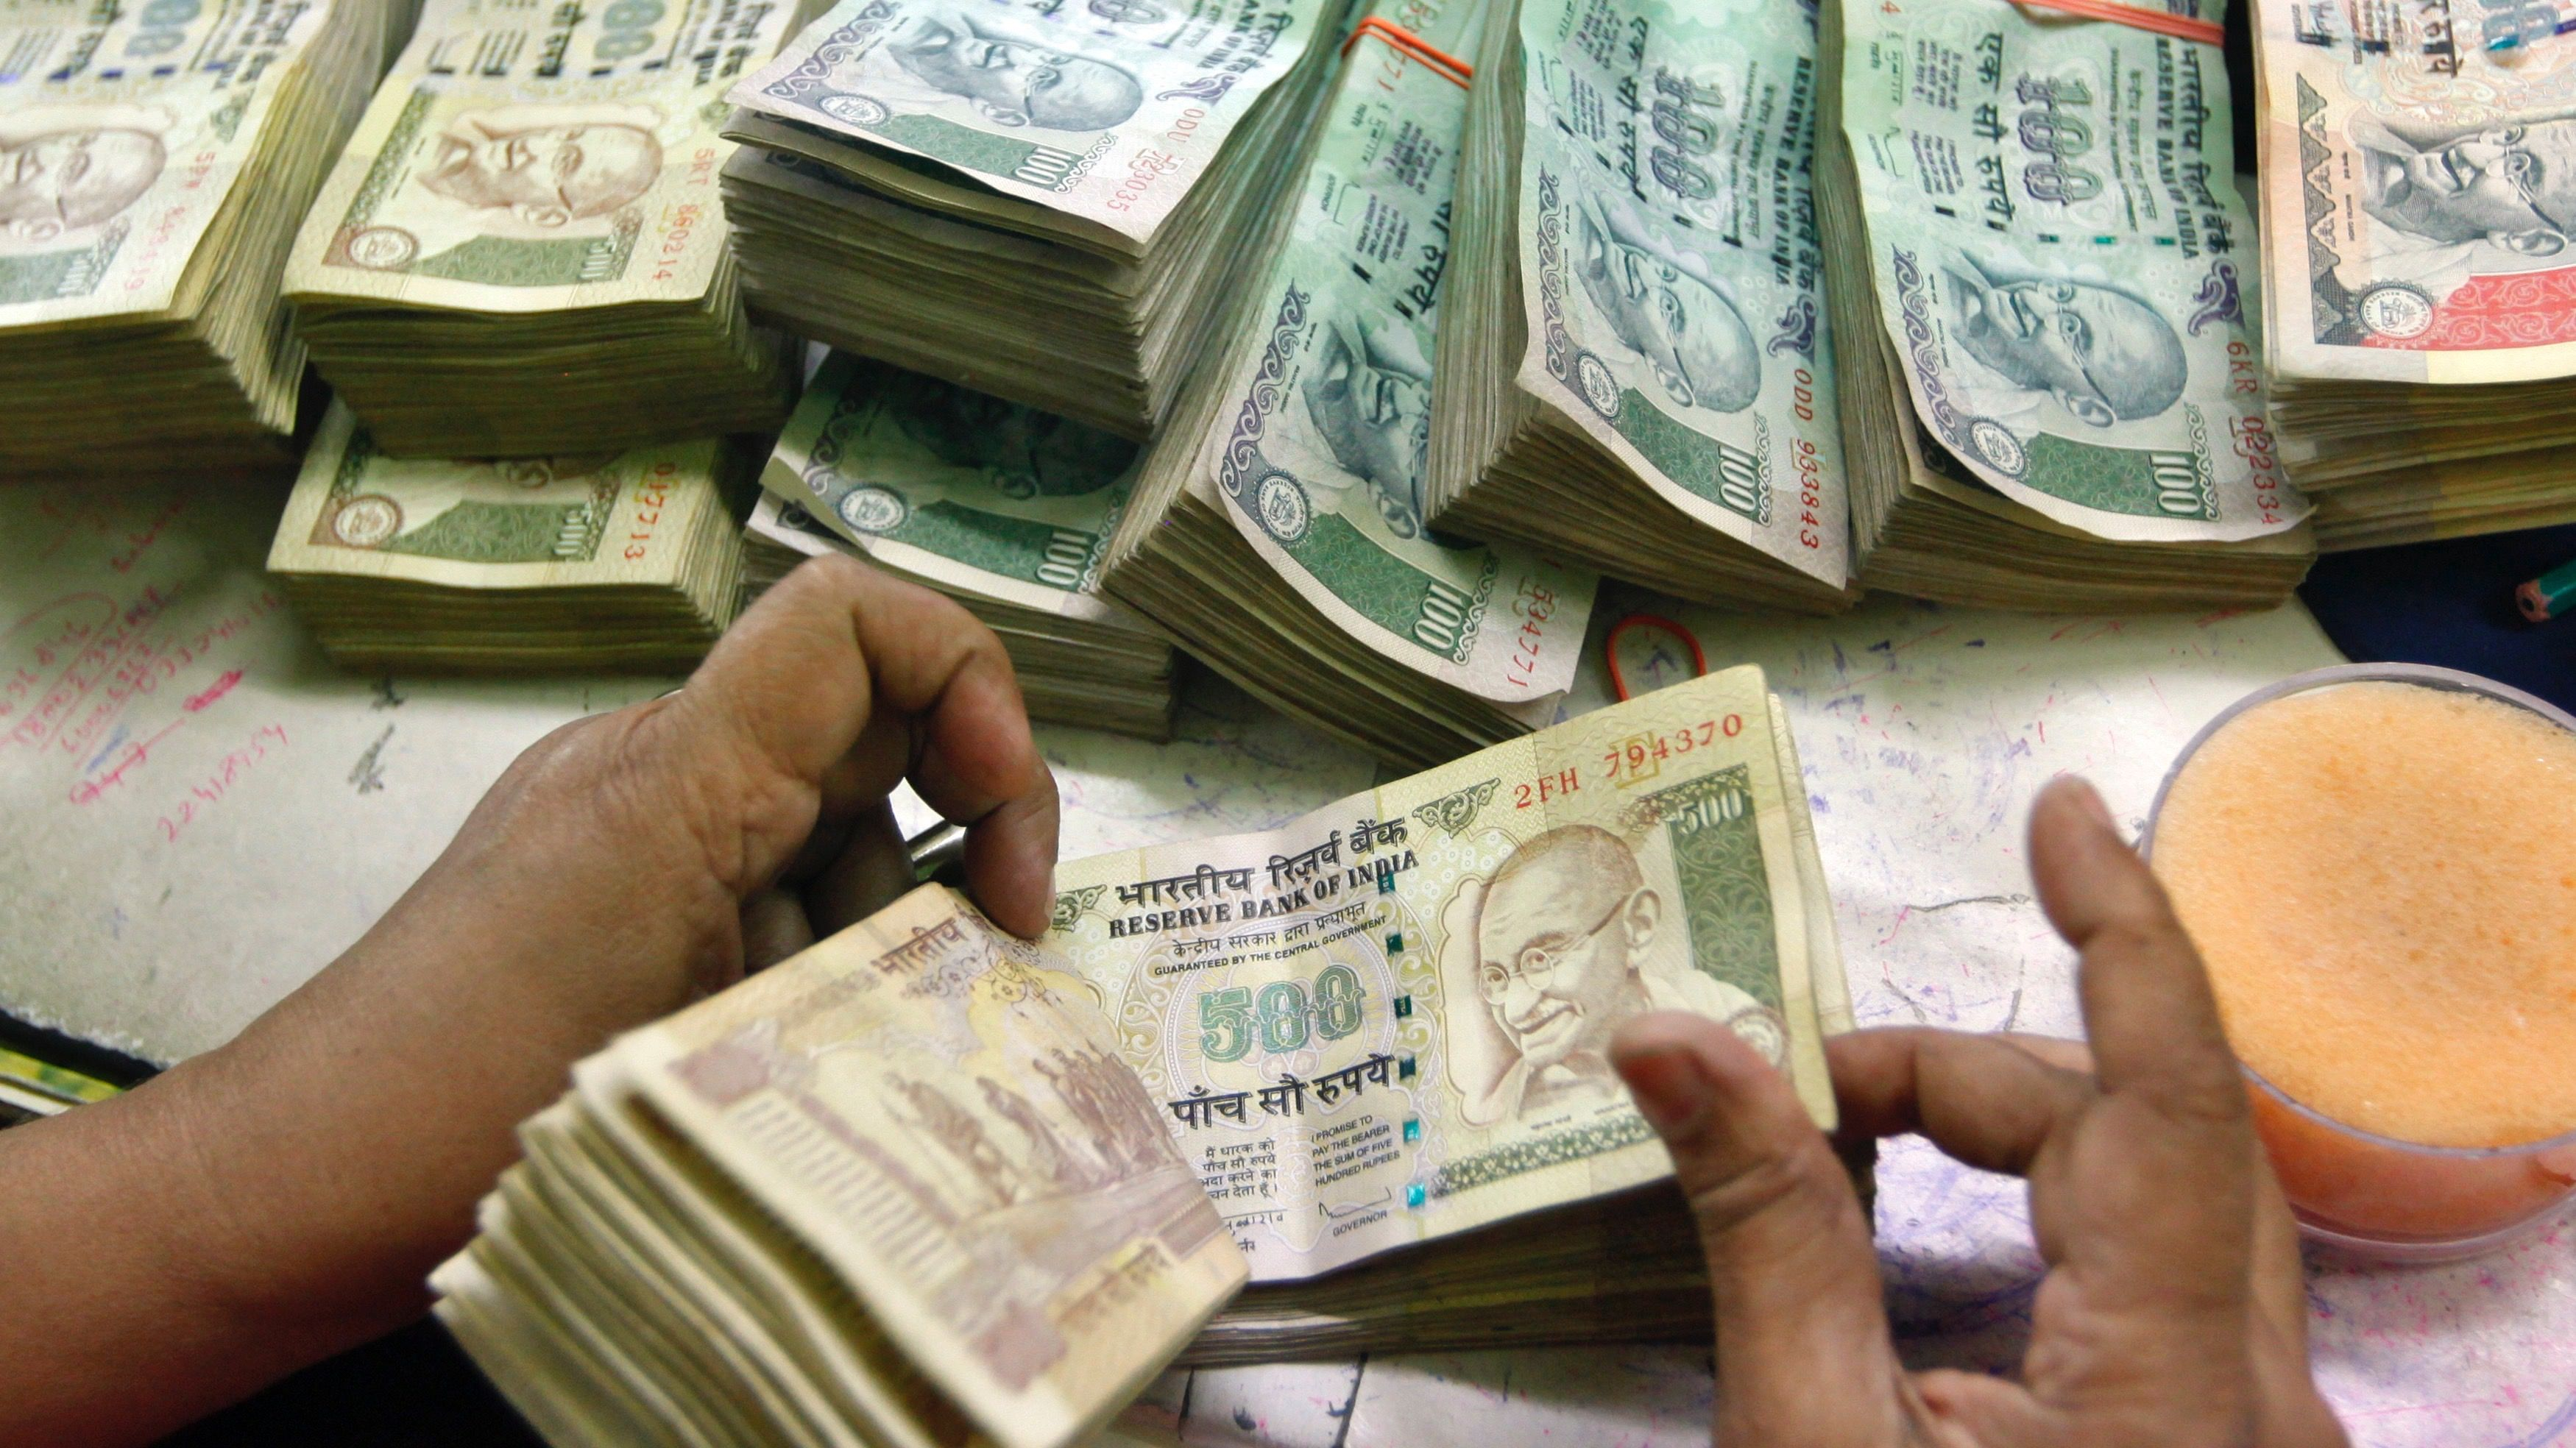 Rs 21000 crore deposited in Jan Dhan accounts